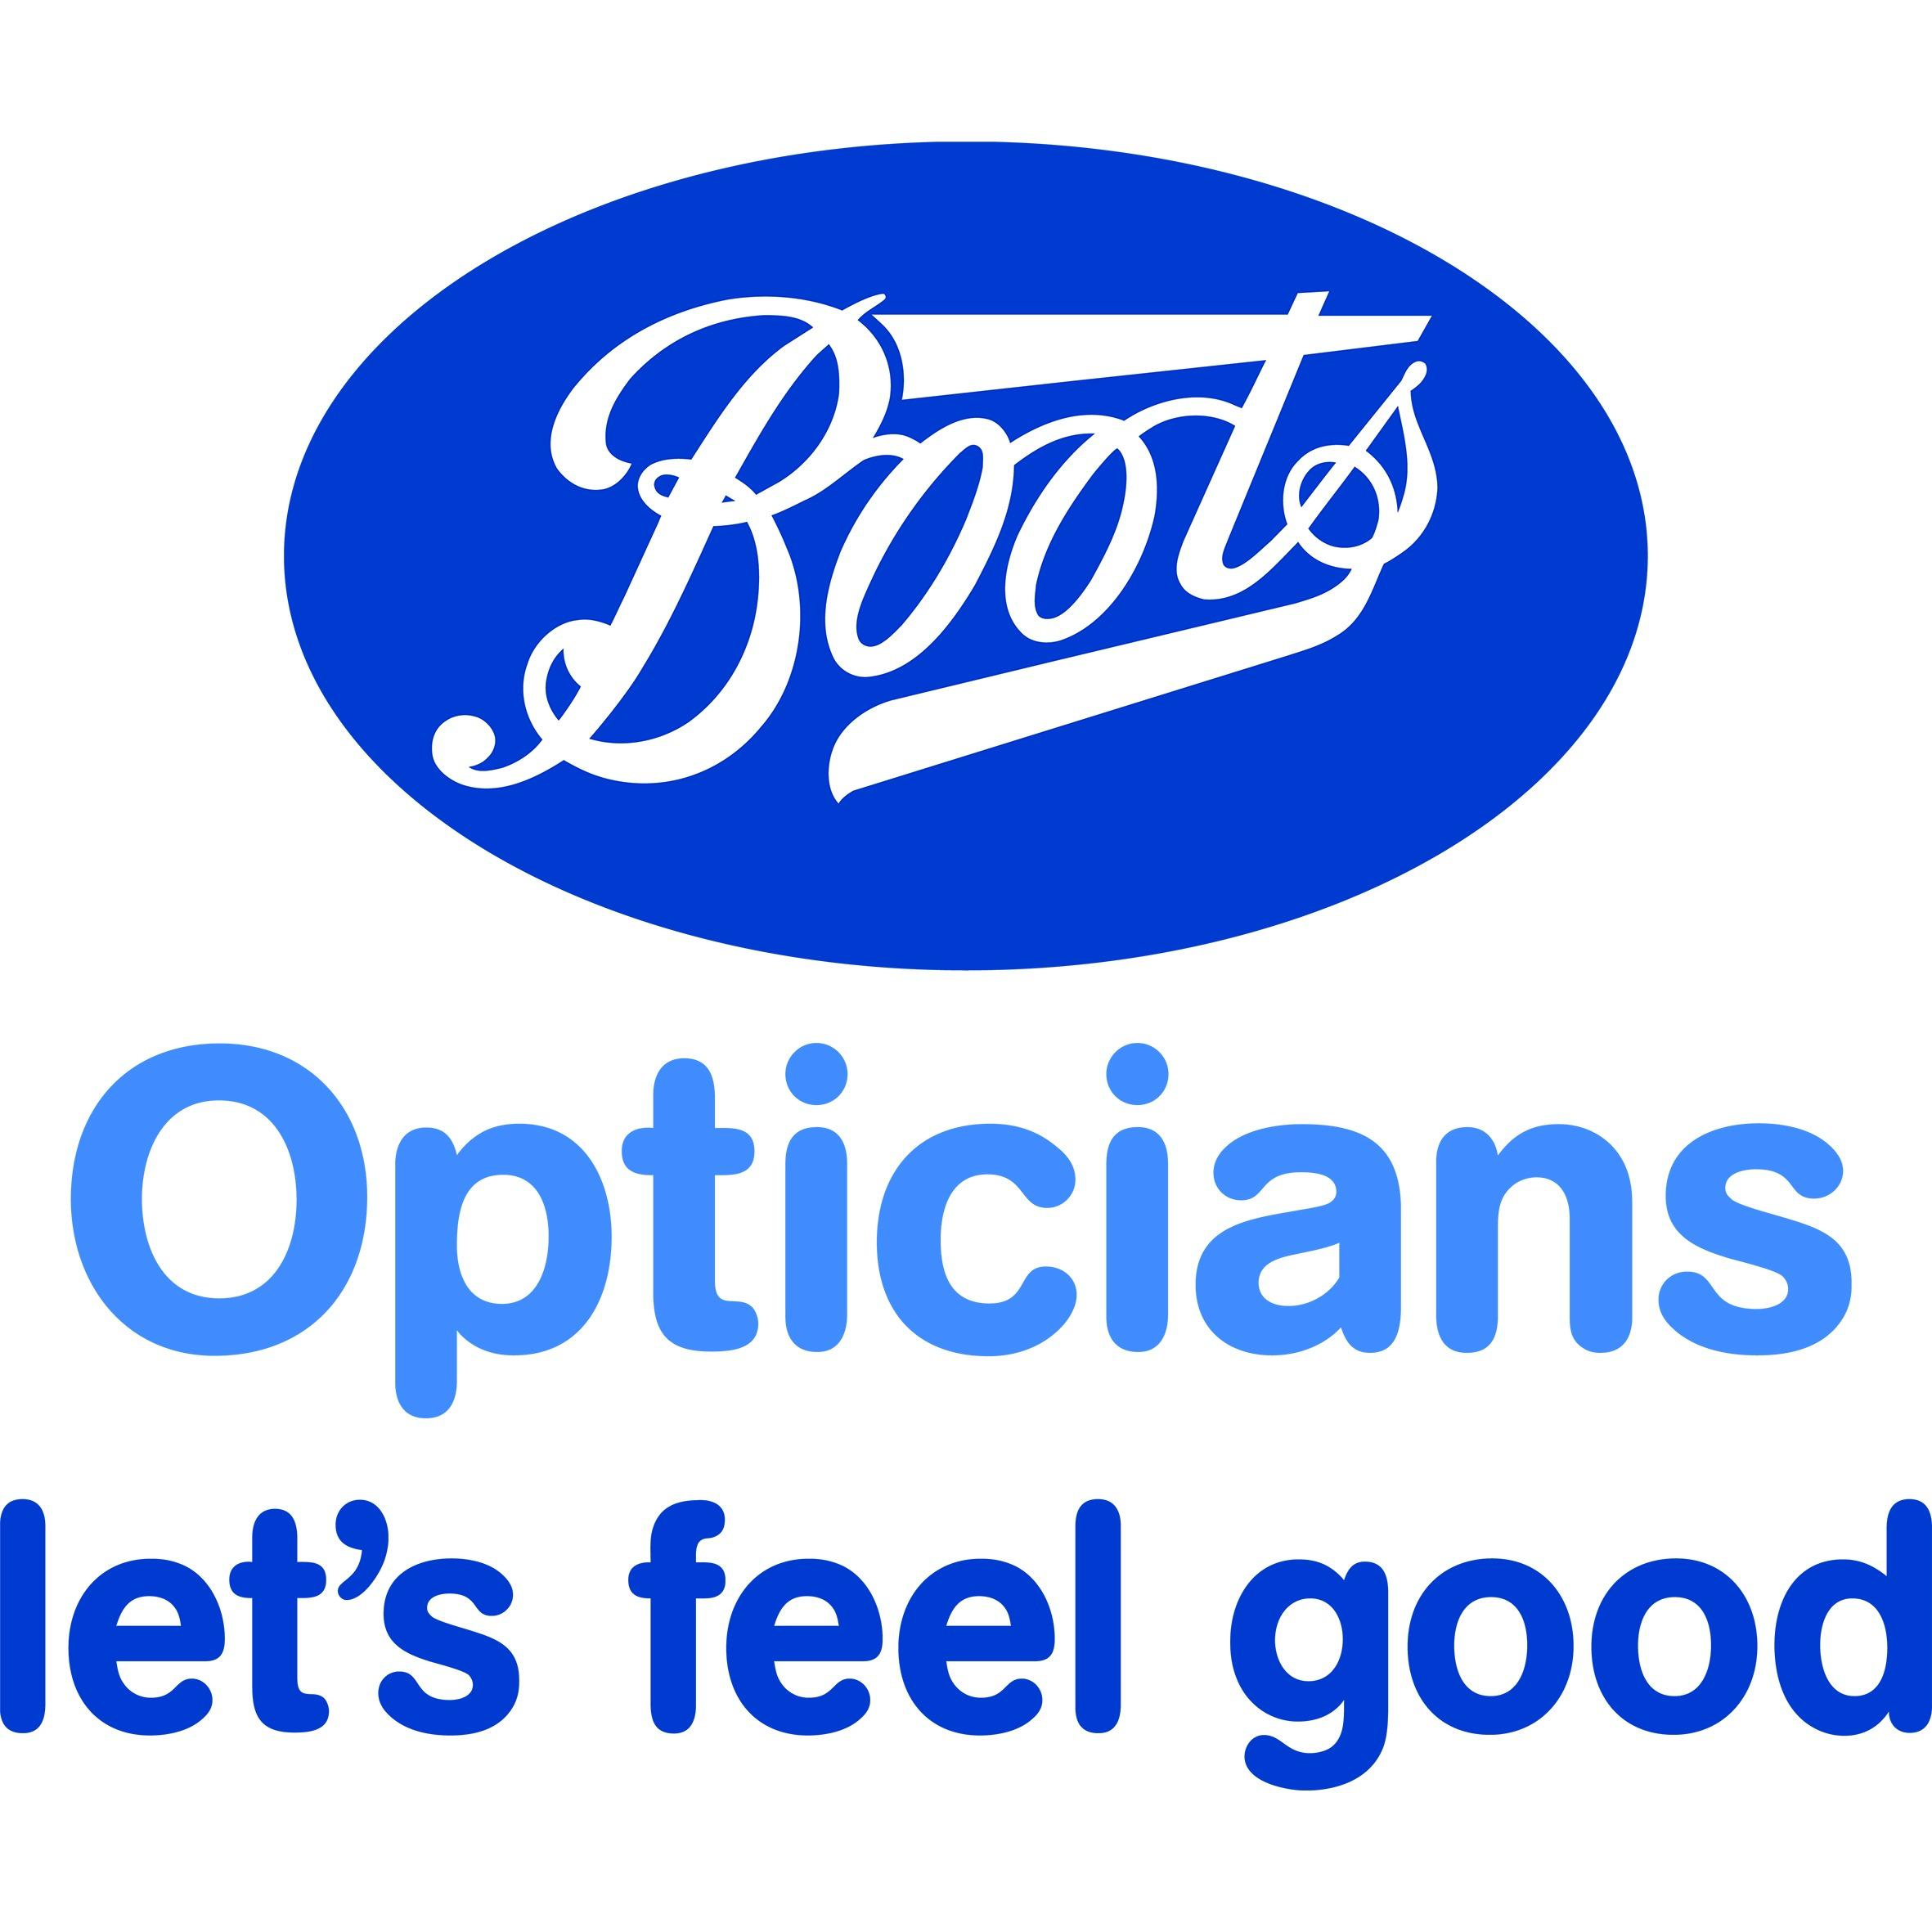 Boots Opticians - Ashton-under-Lyne, Lancashire OL6 7JL - 03451 253776 | ShowMeLocal.com